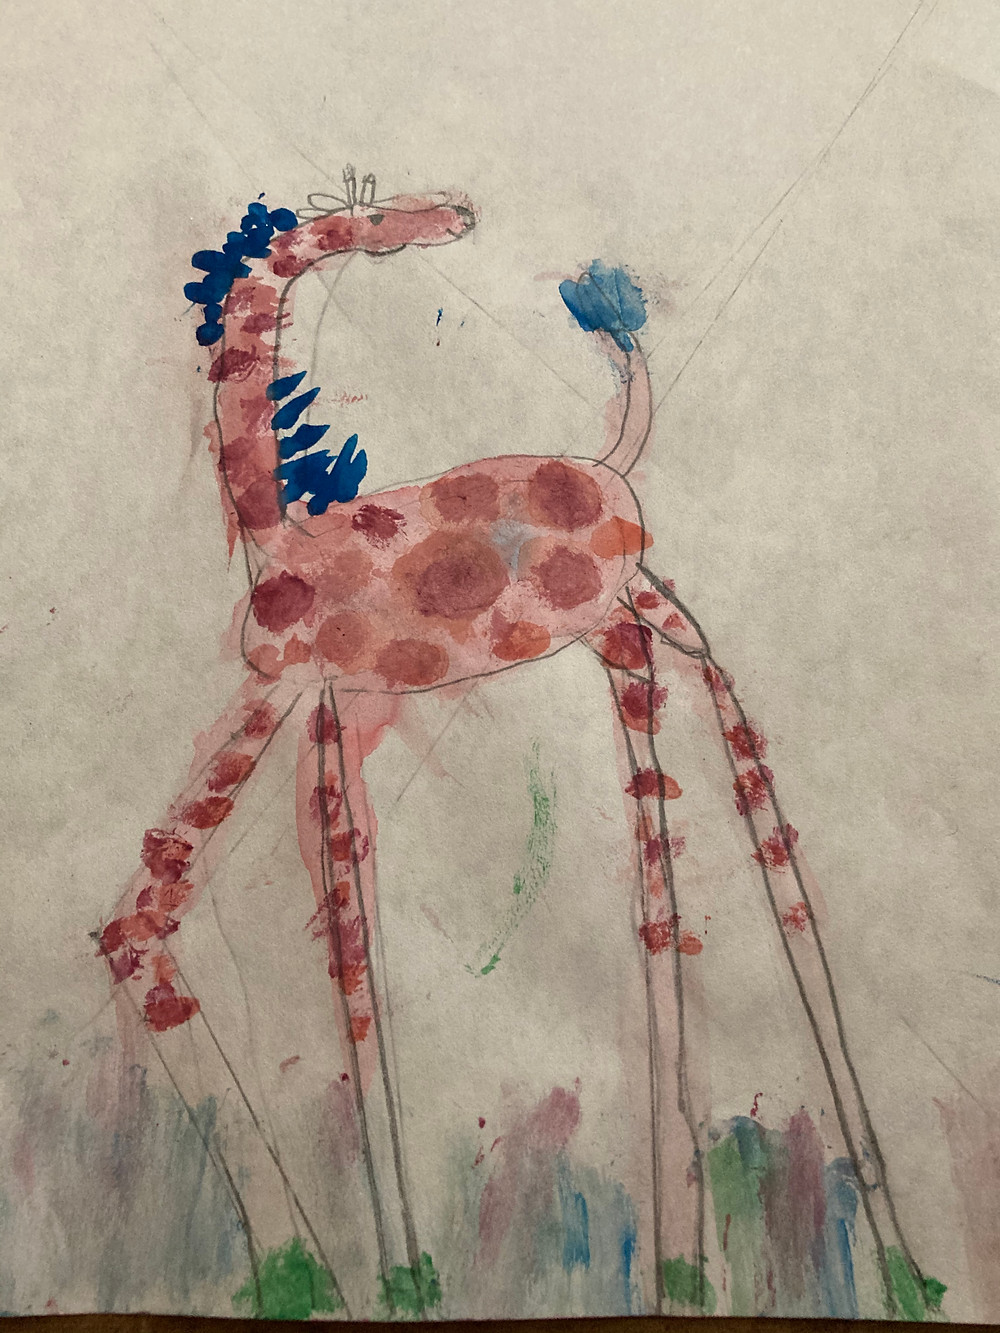 Watercolor and pencil sketch of a red giraffe